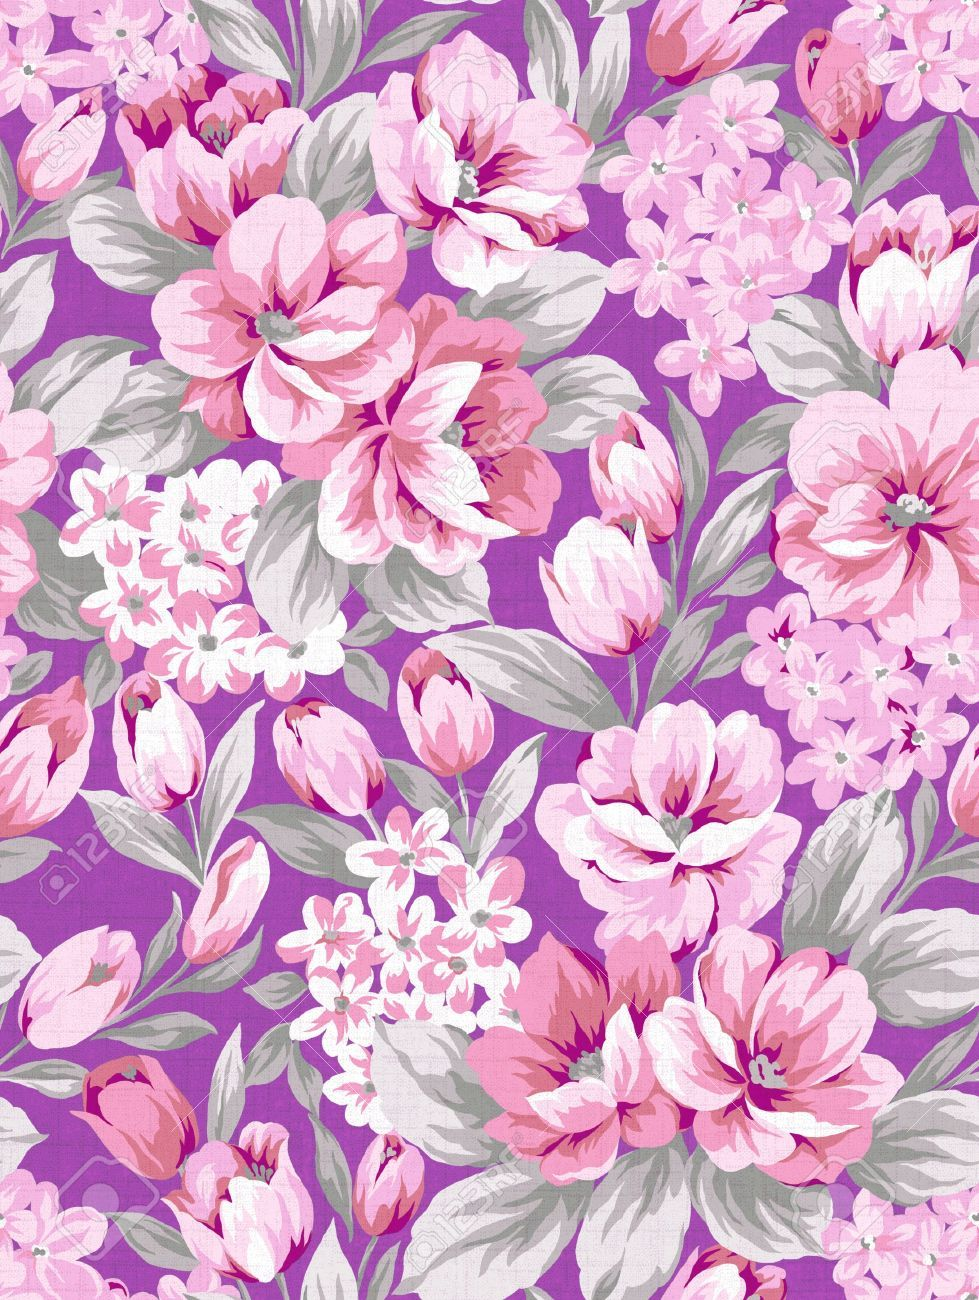 Flower Wallpaper, Flower Backgrounds, Design Patterns, Floral Patterns,  Flower Photography, Vintage Flowers, Purple Flowers, Prints, Google Search